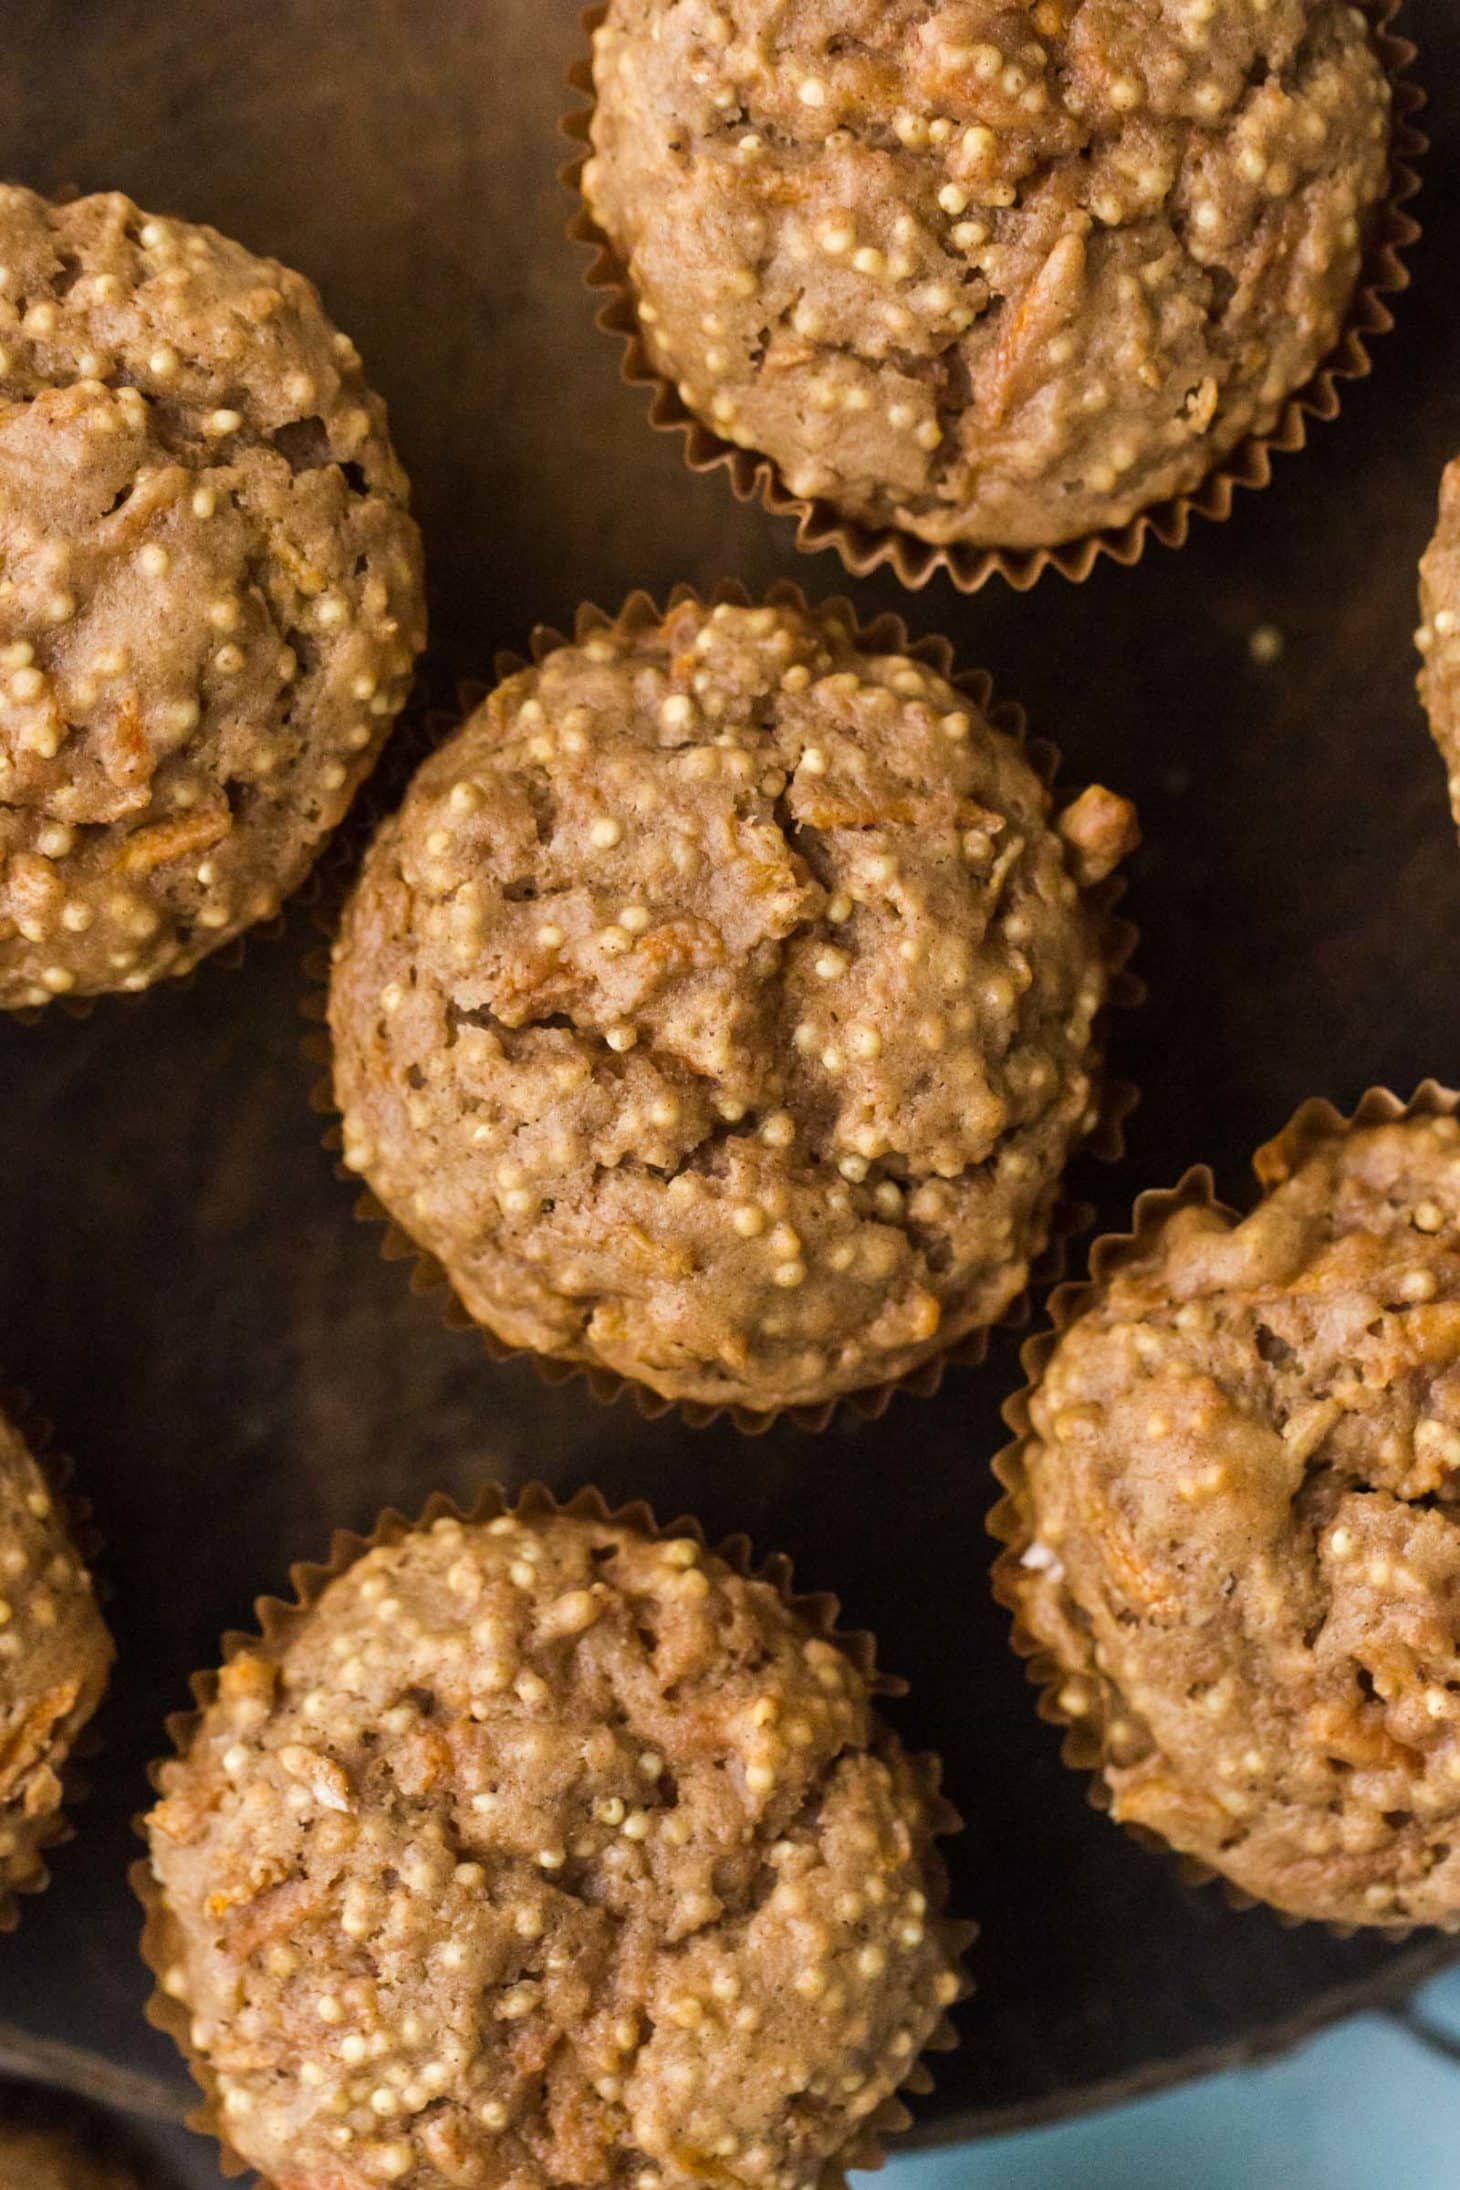 Spiced Carrot Muffins with Millet